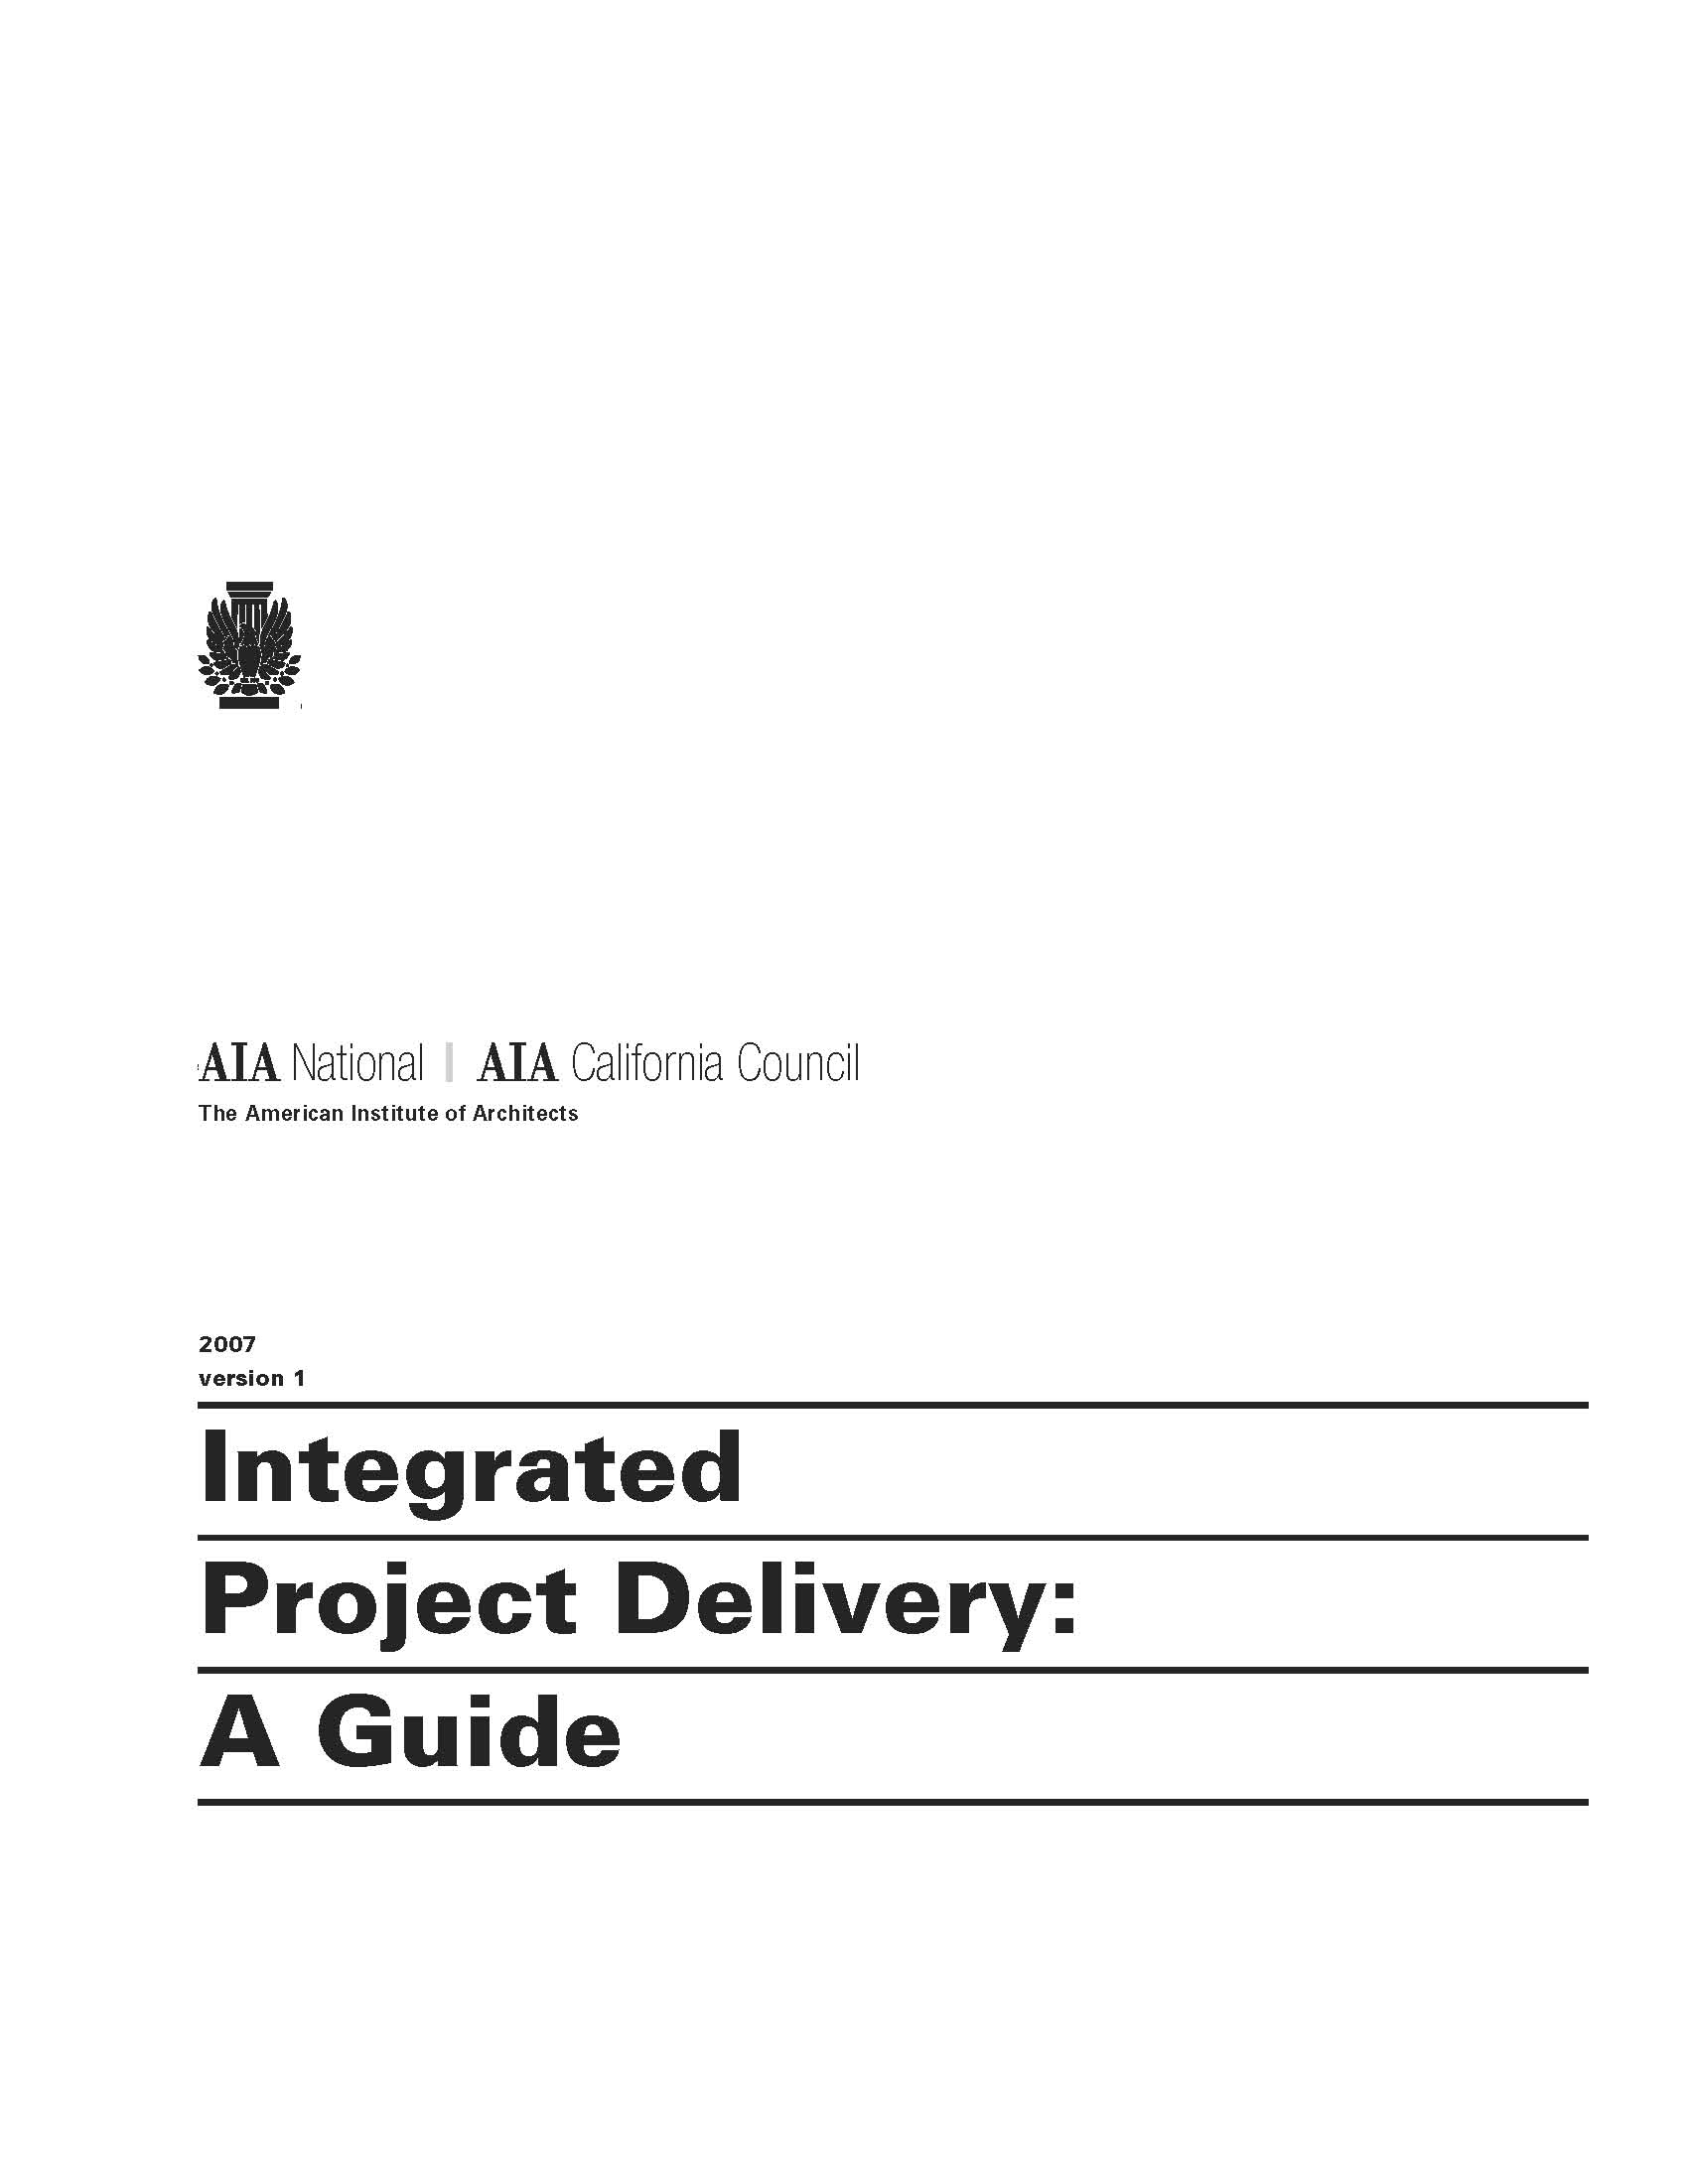 Integrated Project Delivery: A Guide